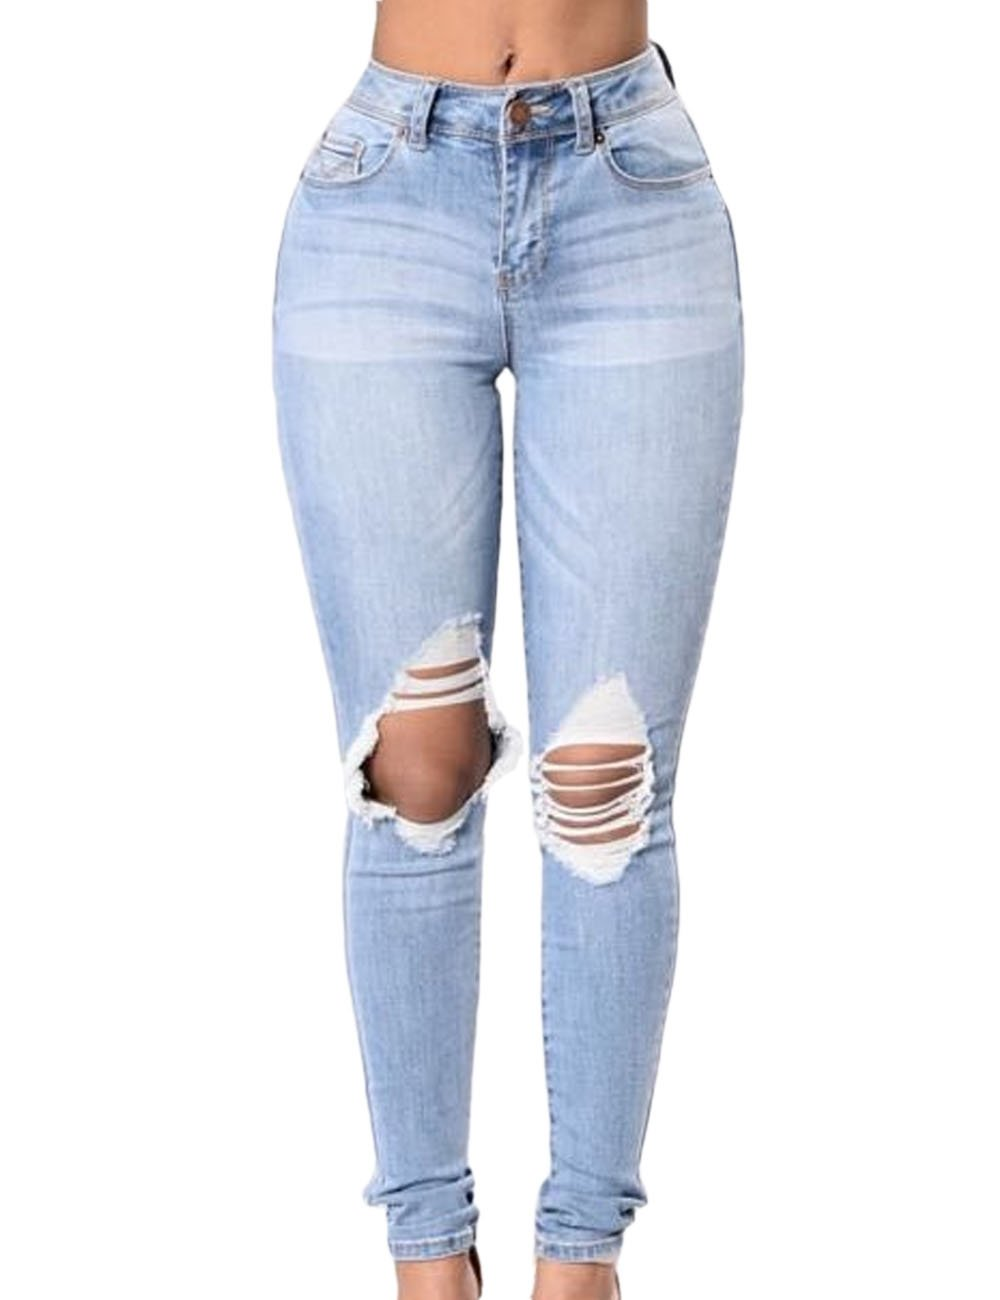 BIUBIONG Women's High Waisted Distressed Skinny Ripped Jeans Pants for Summer